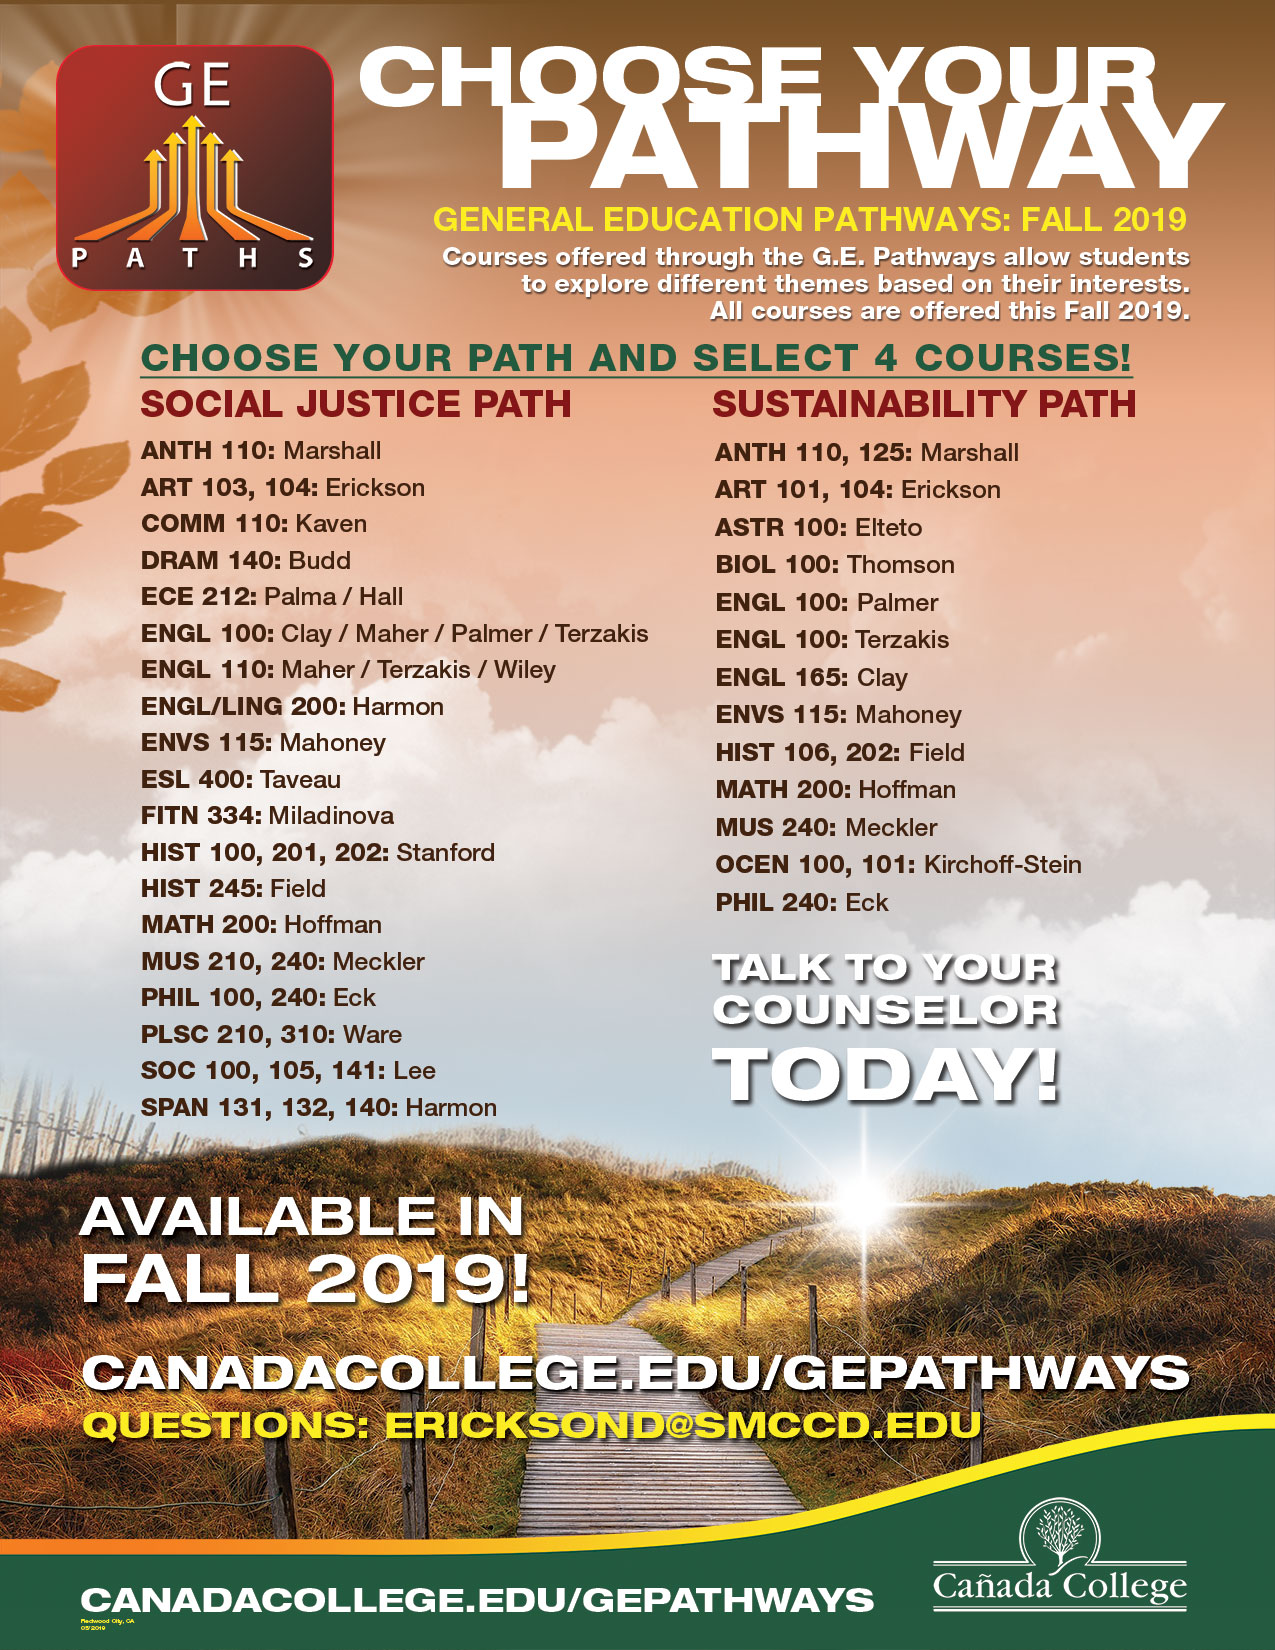 Fall 2019 GE Pathways poster